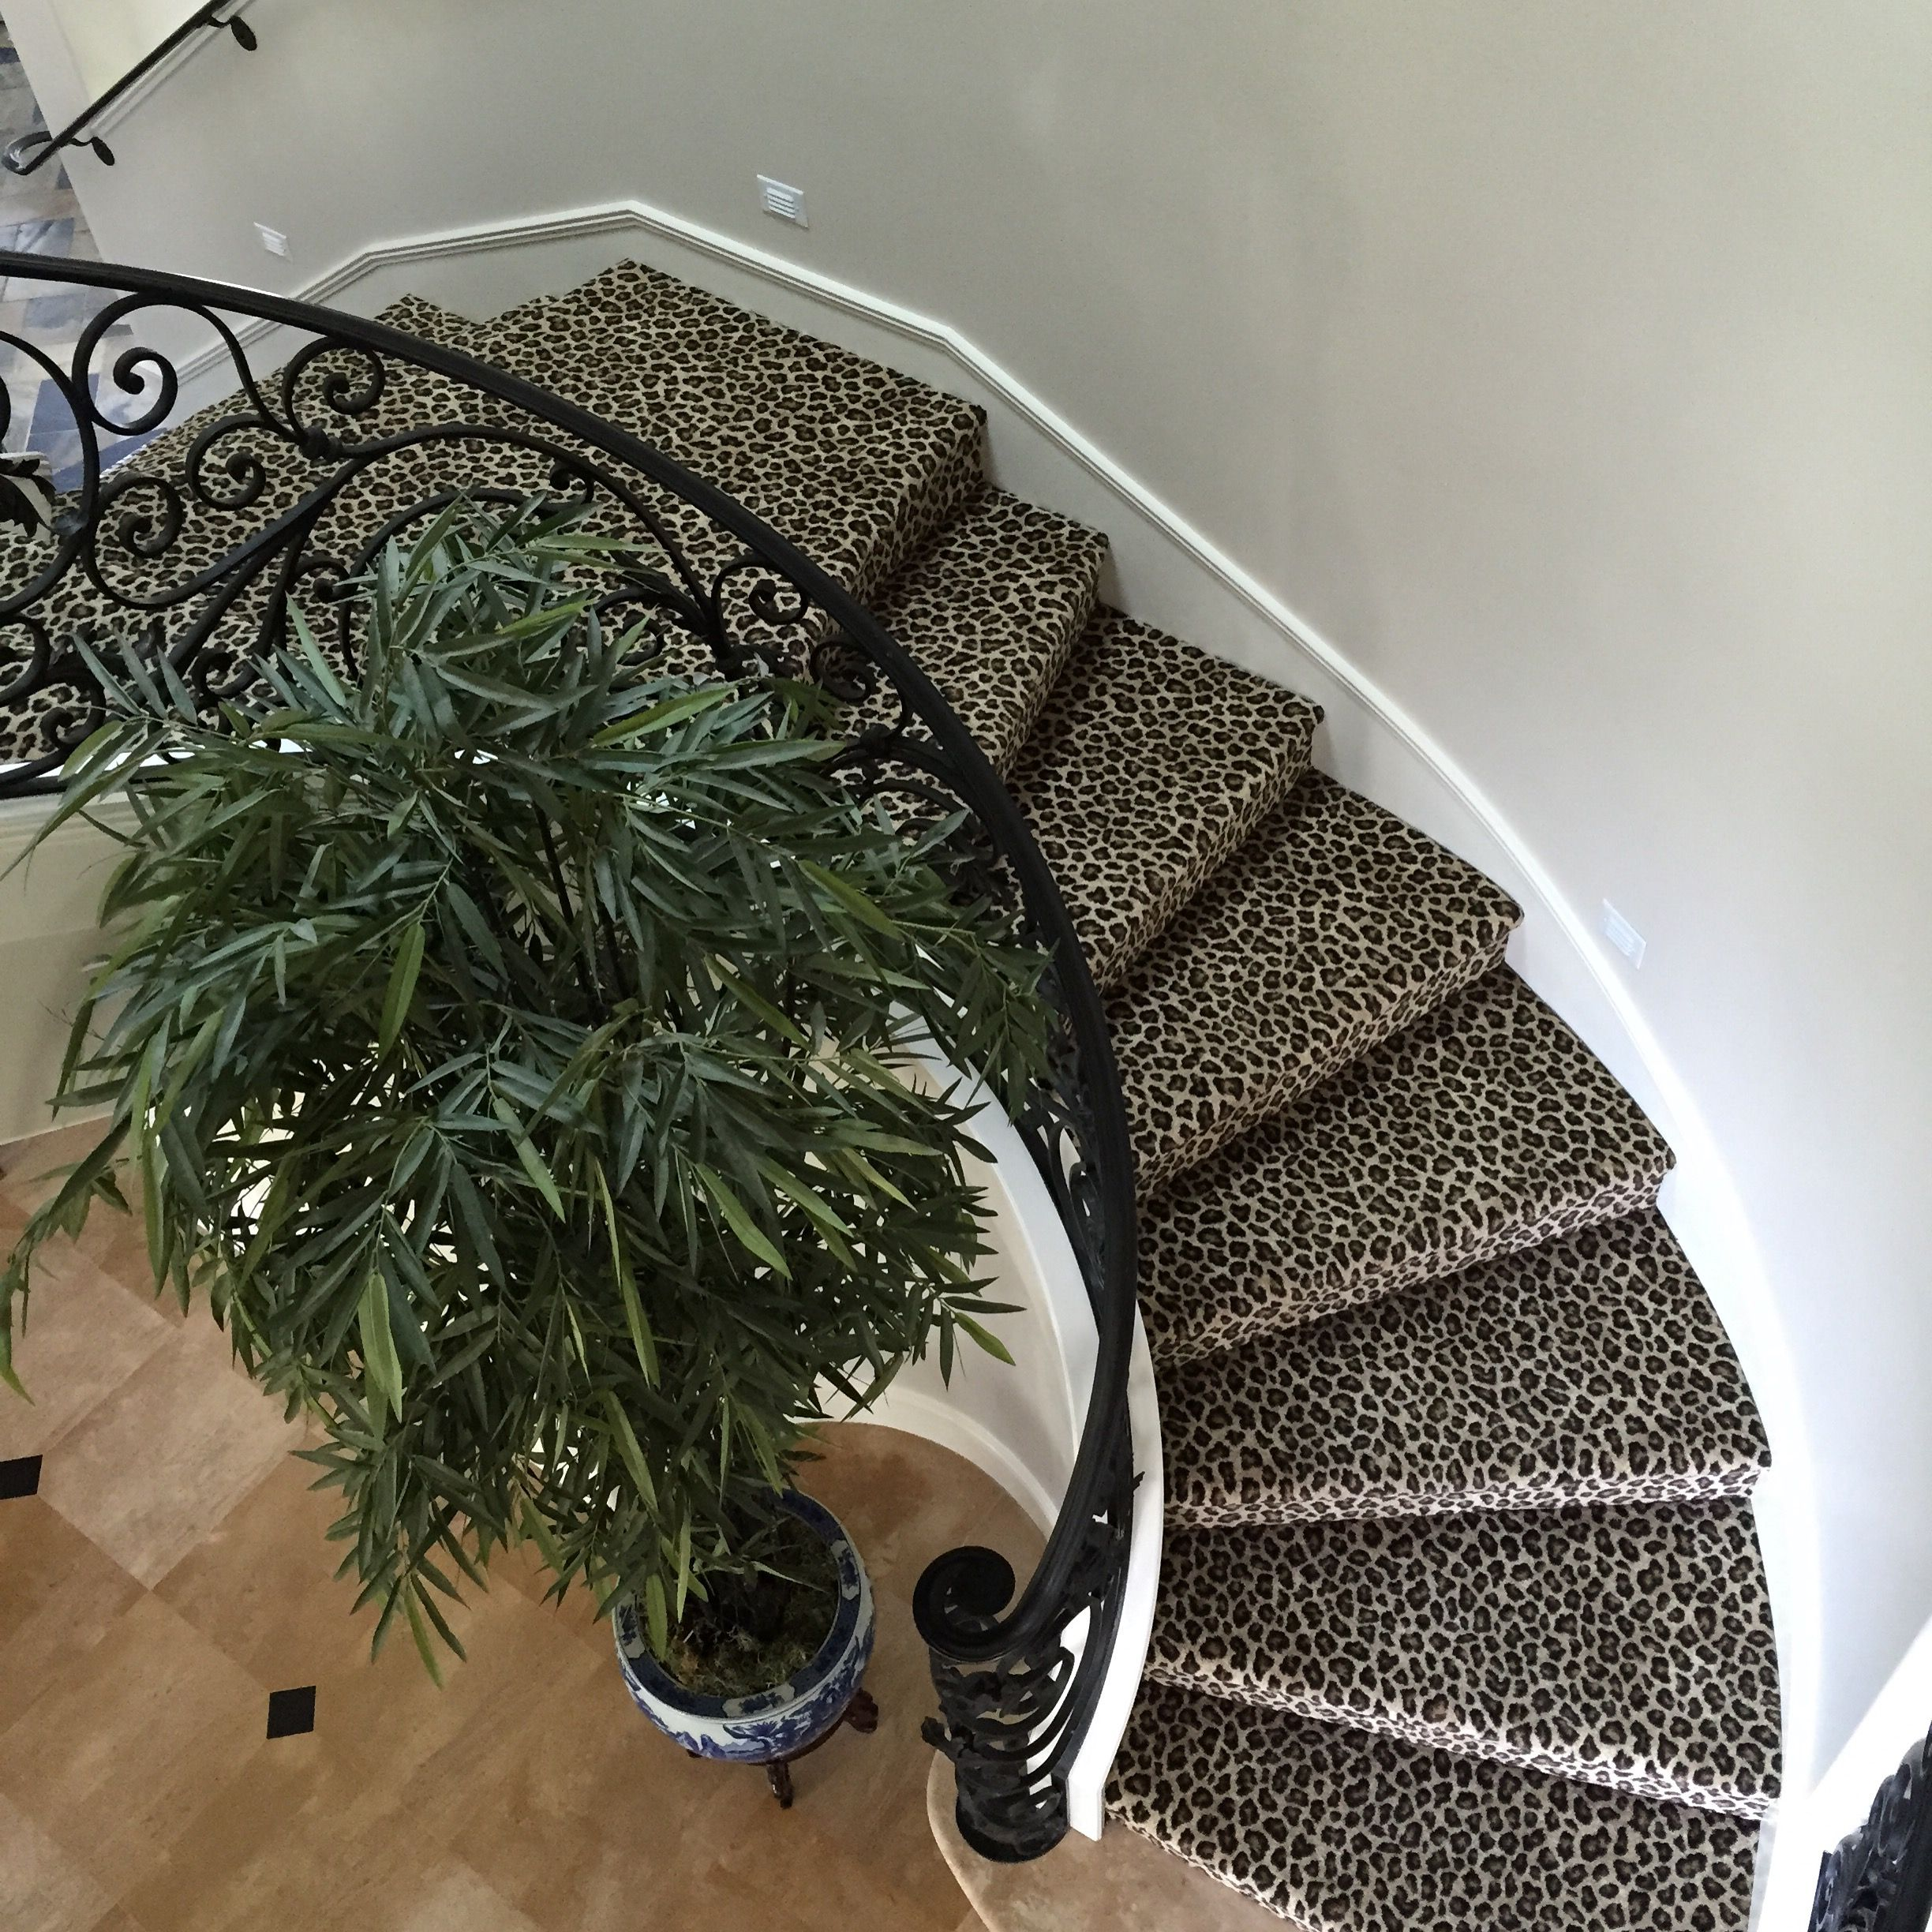 Leopard Animal Patterned Carpet Installed On Curved Stairs For A Repeat  Client In Newport Beach,